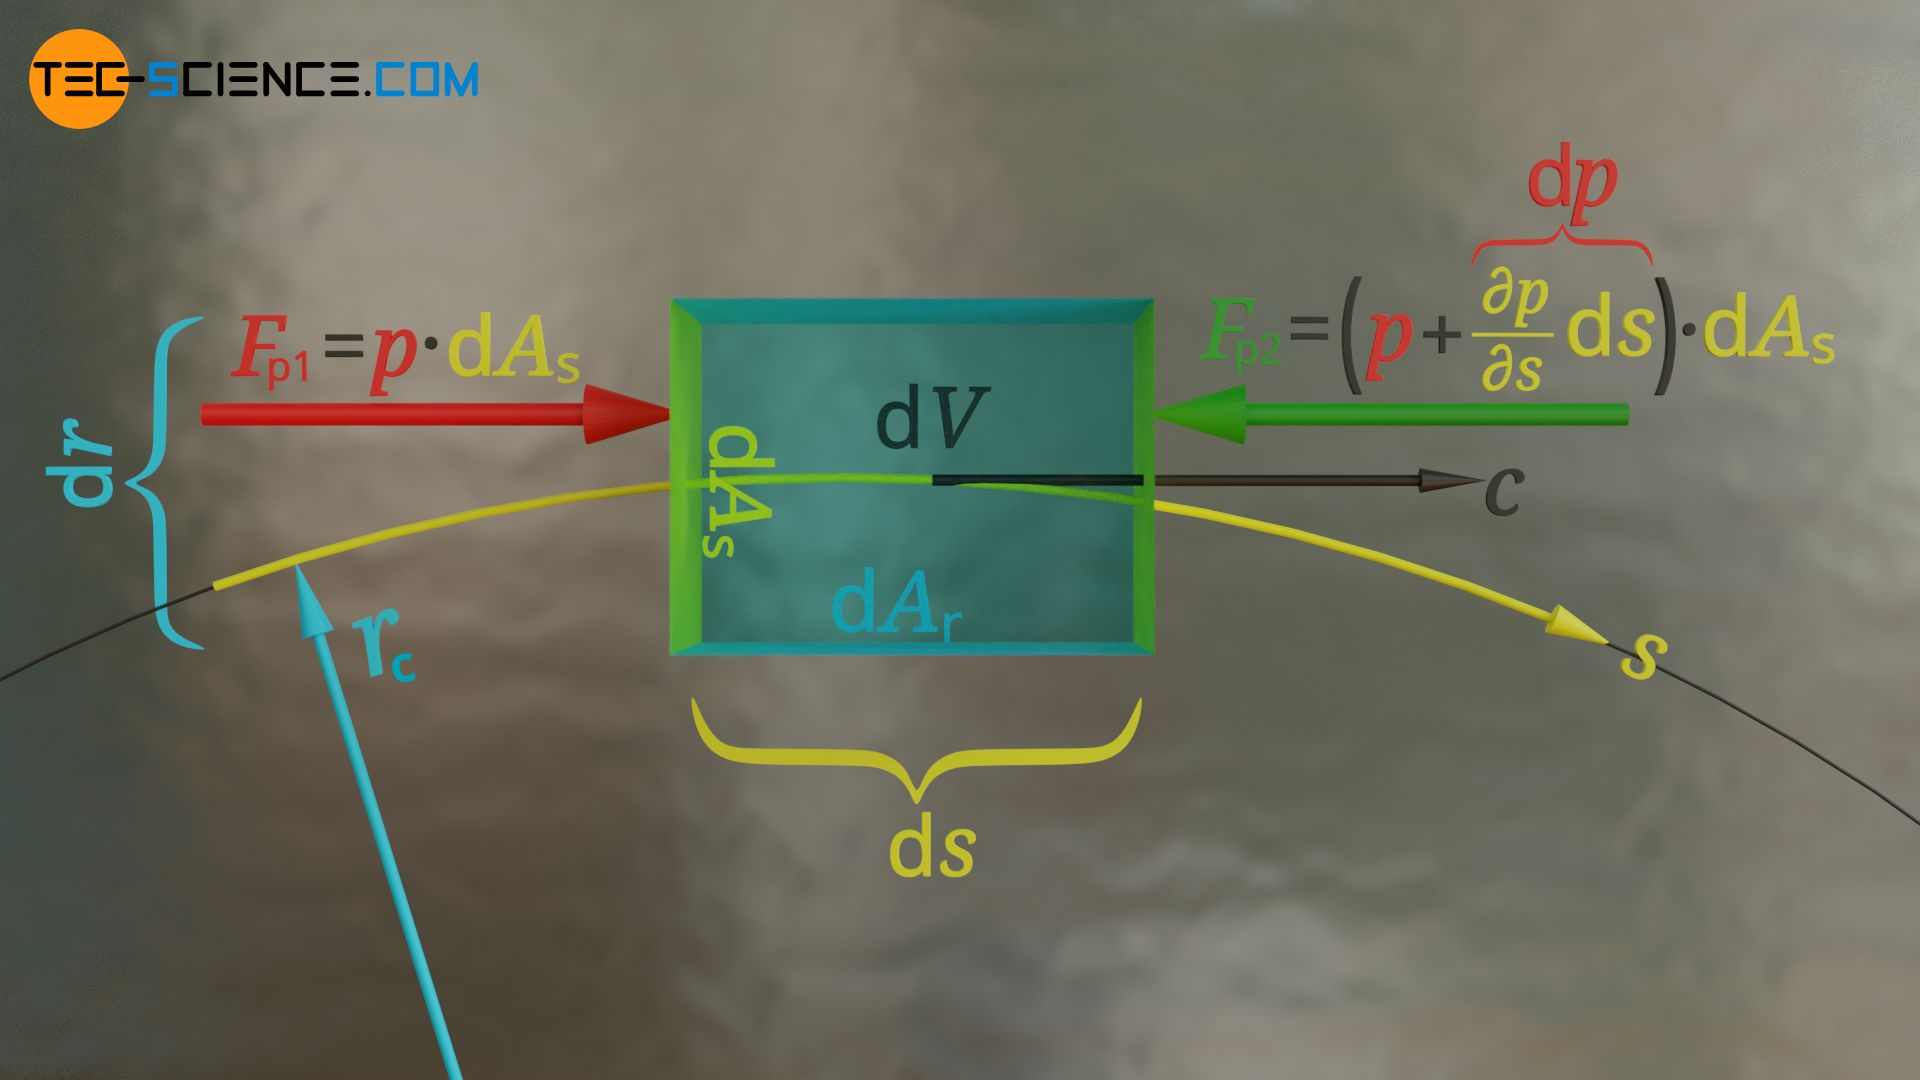 Pressure forces acting on the end faces of the fluid element